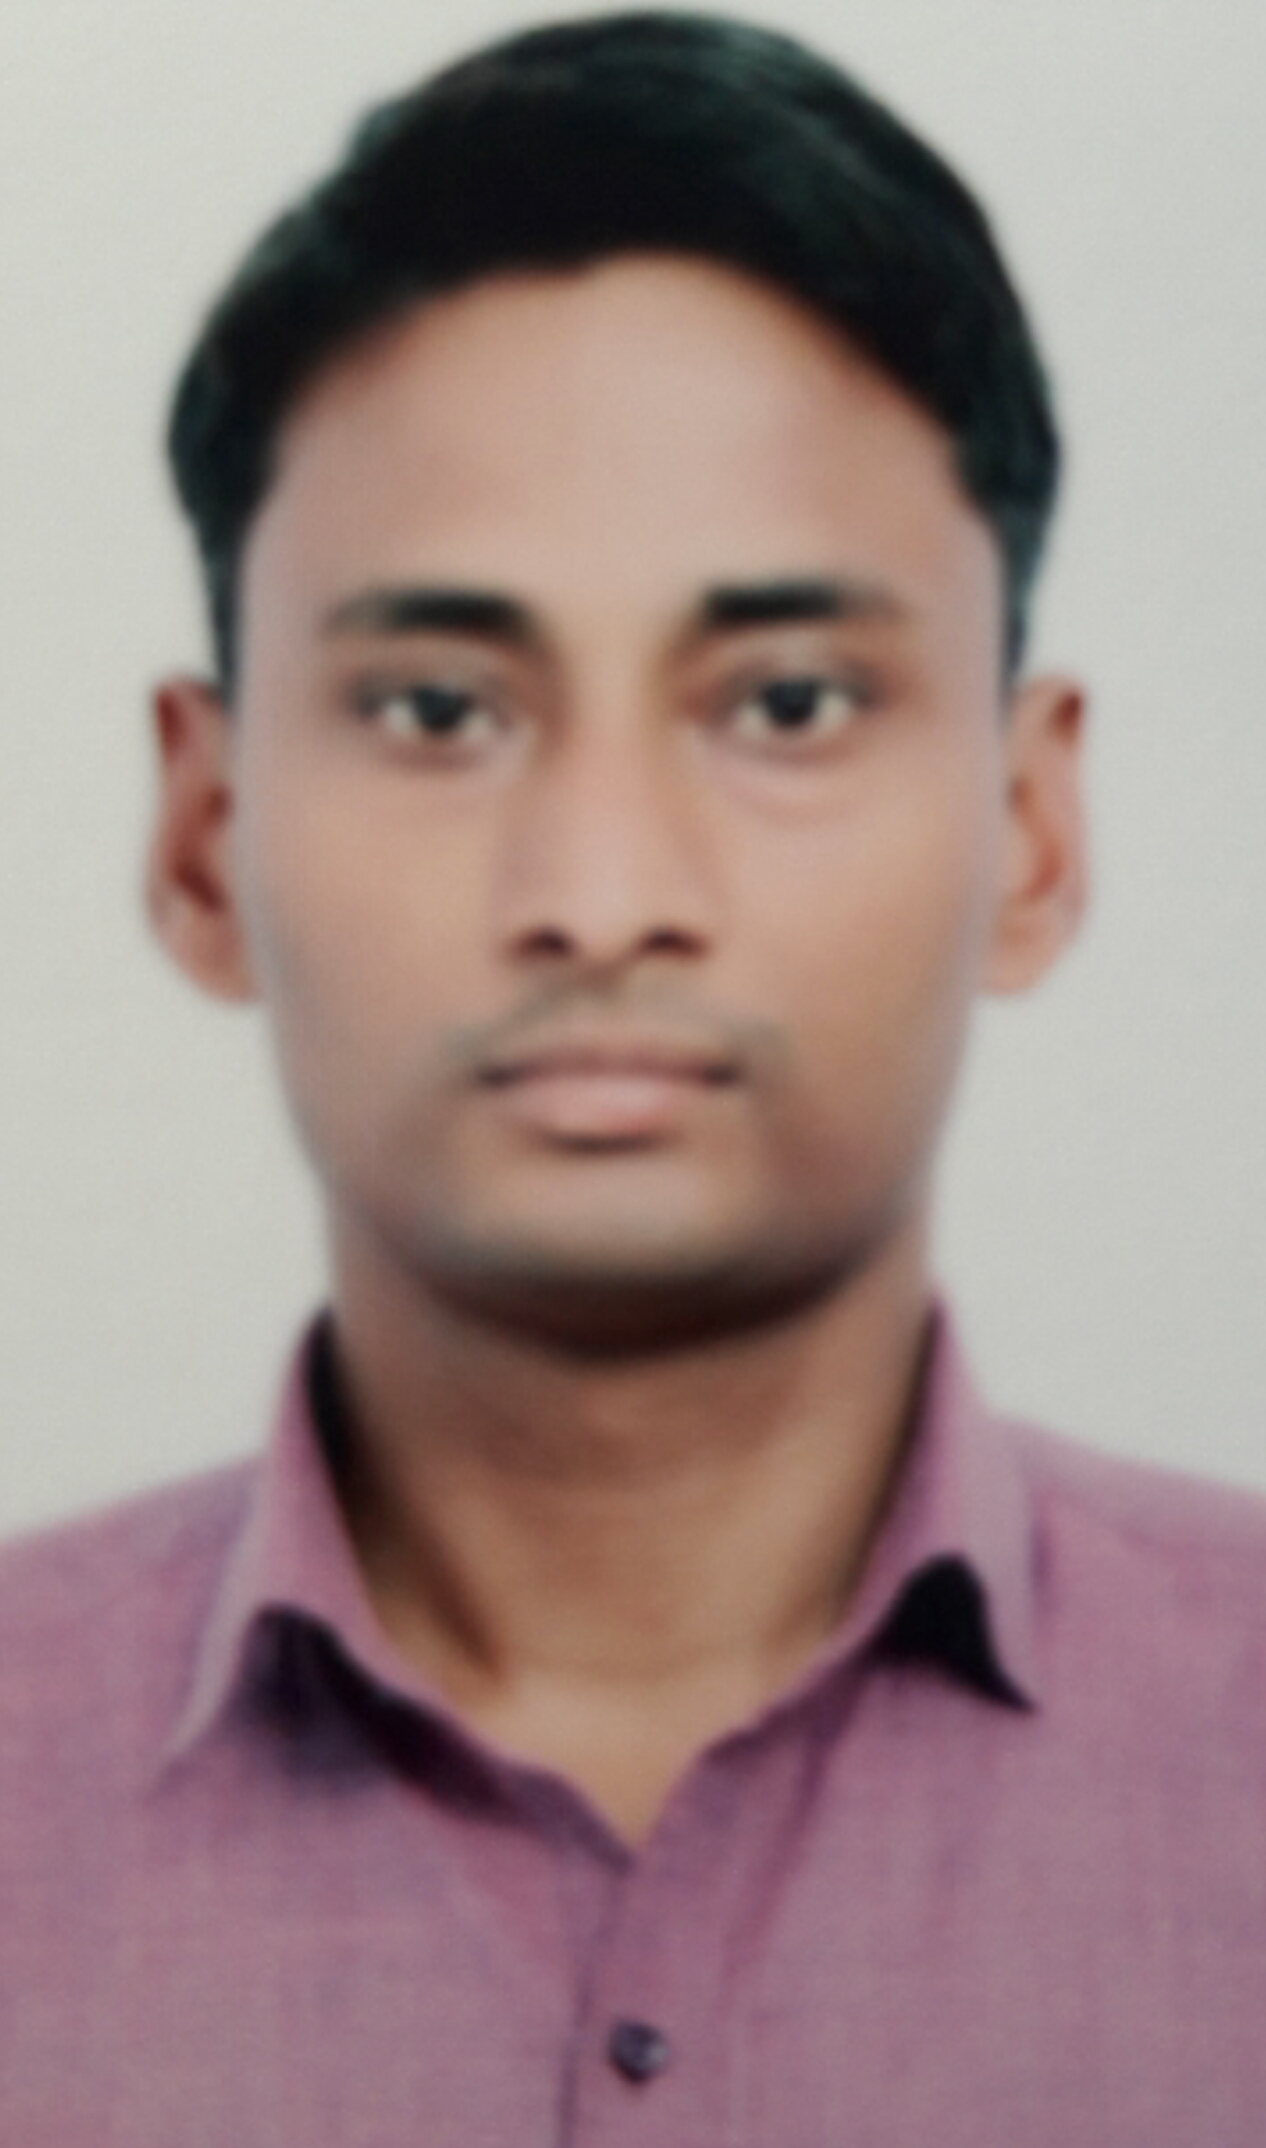 Mr. Laxmi Shankar